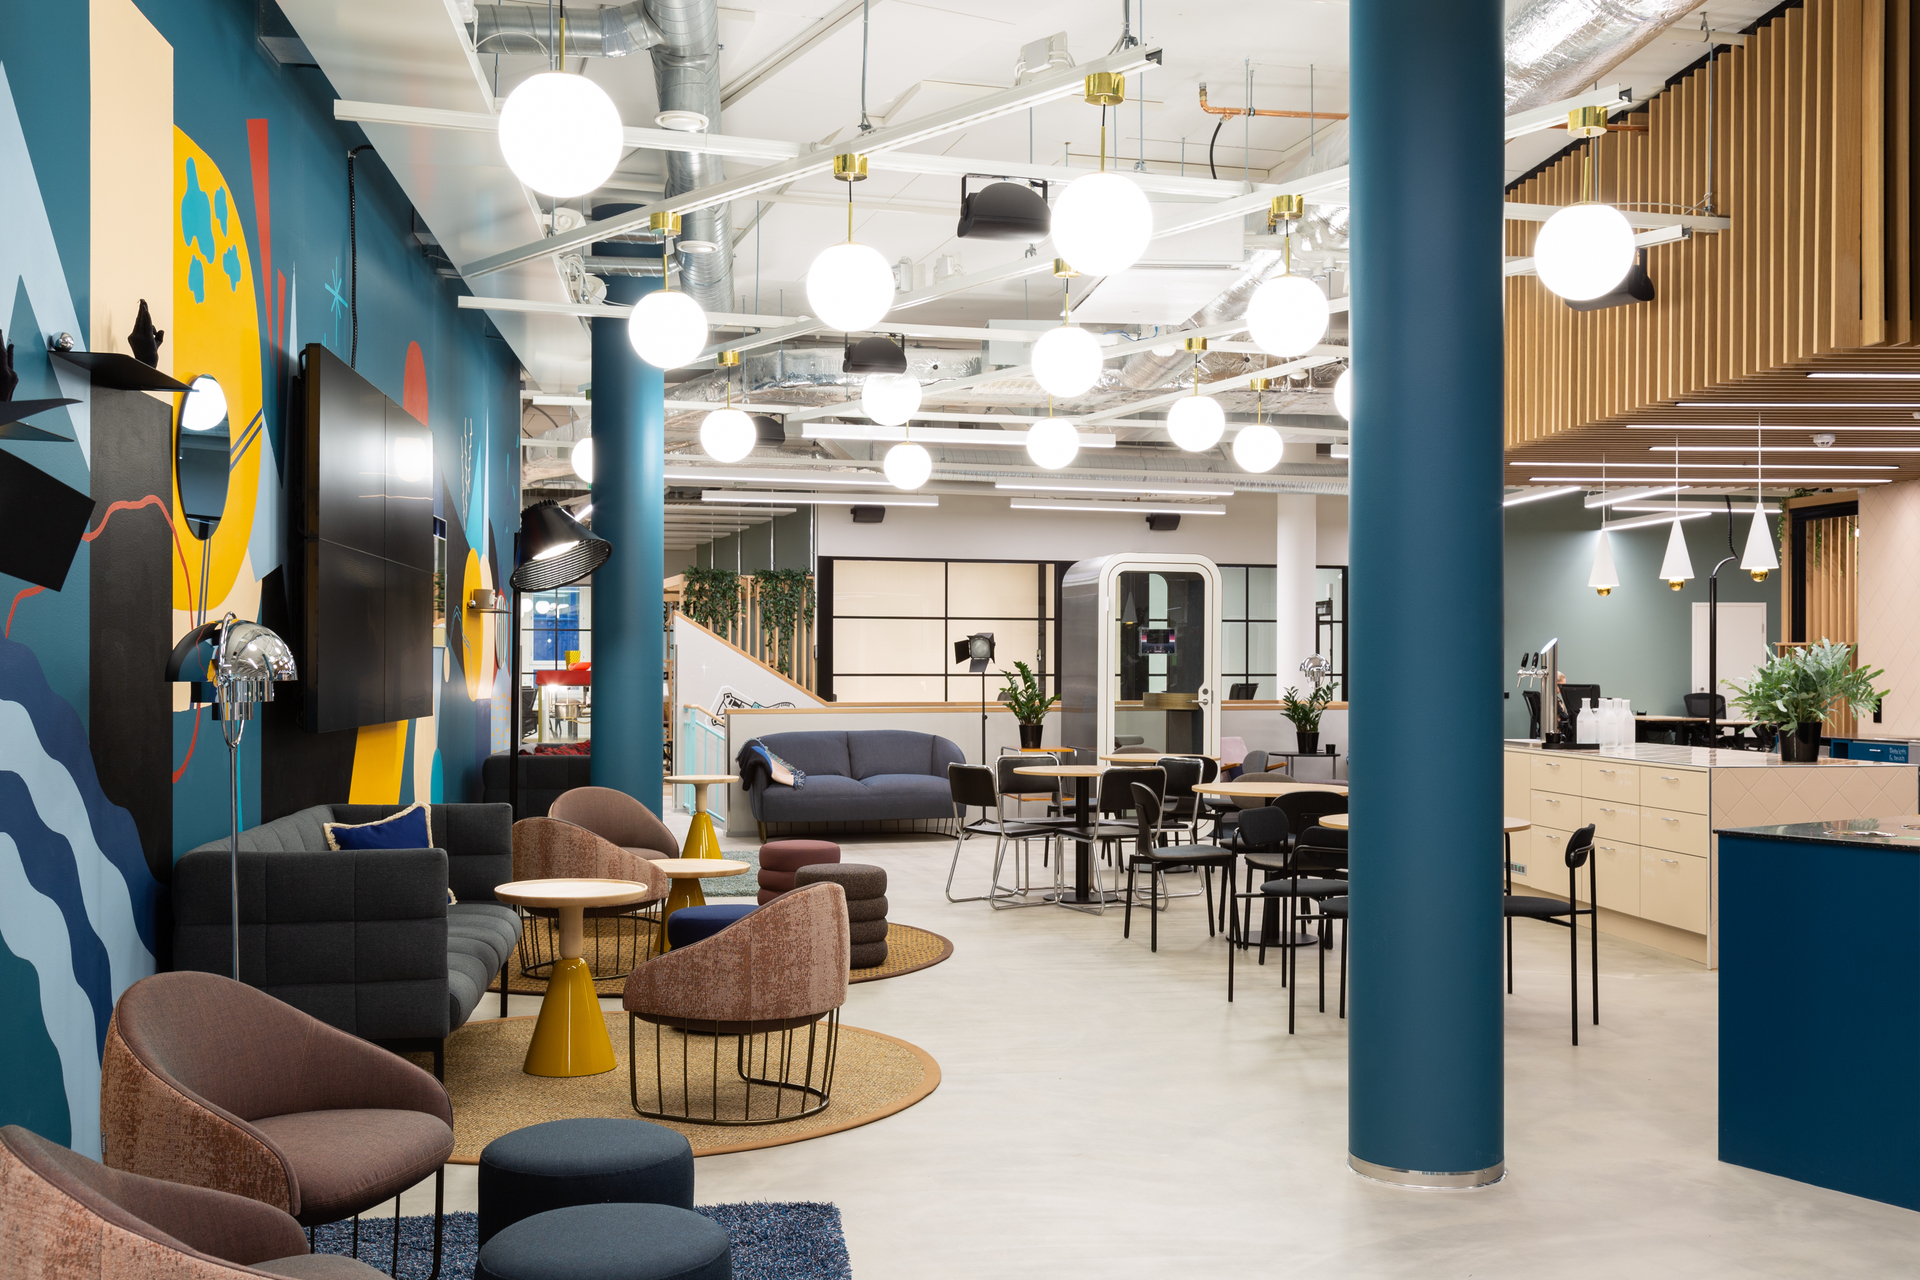 The vibrant and energetic break room and common area at MOW Supernova Coworking Offices in Tampere, Finland, featuring Framery Acoustics' Framery O office pod. Photography by Esa Kapila